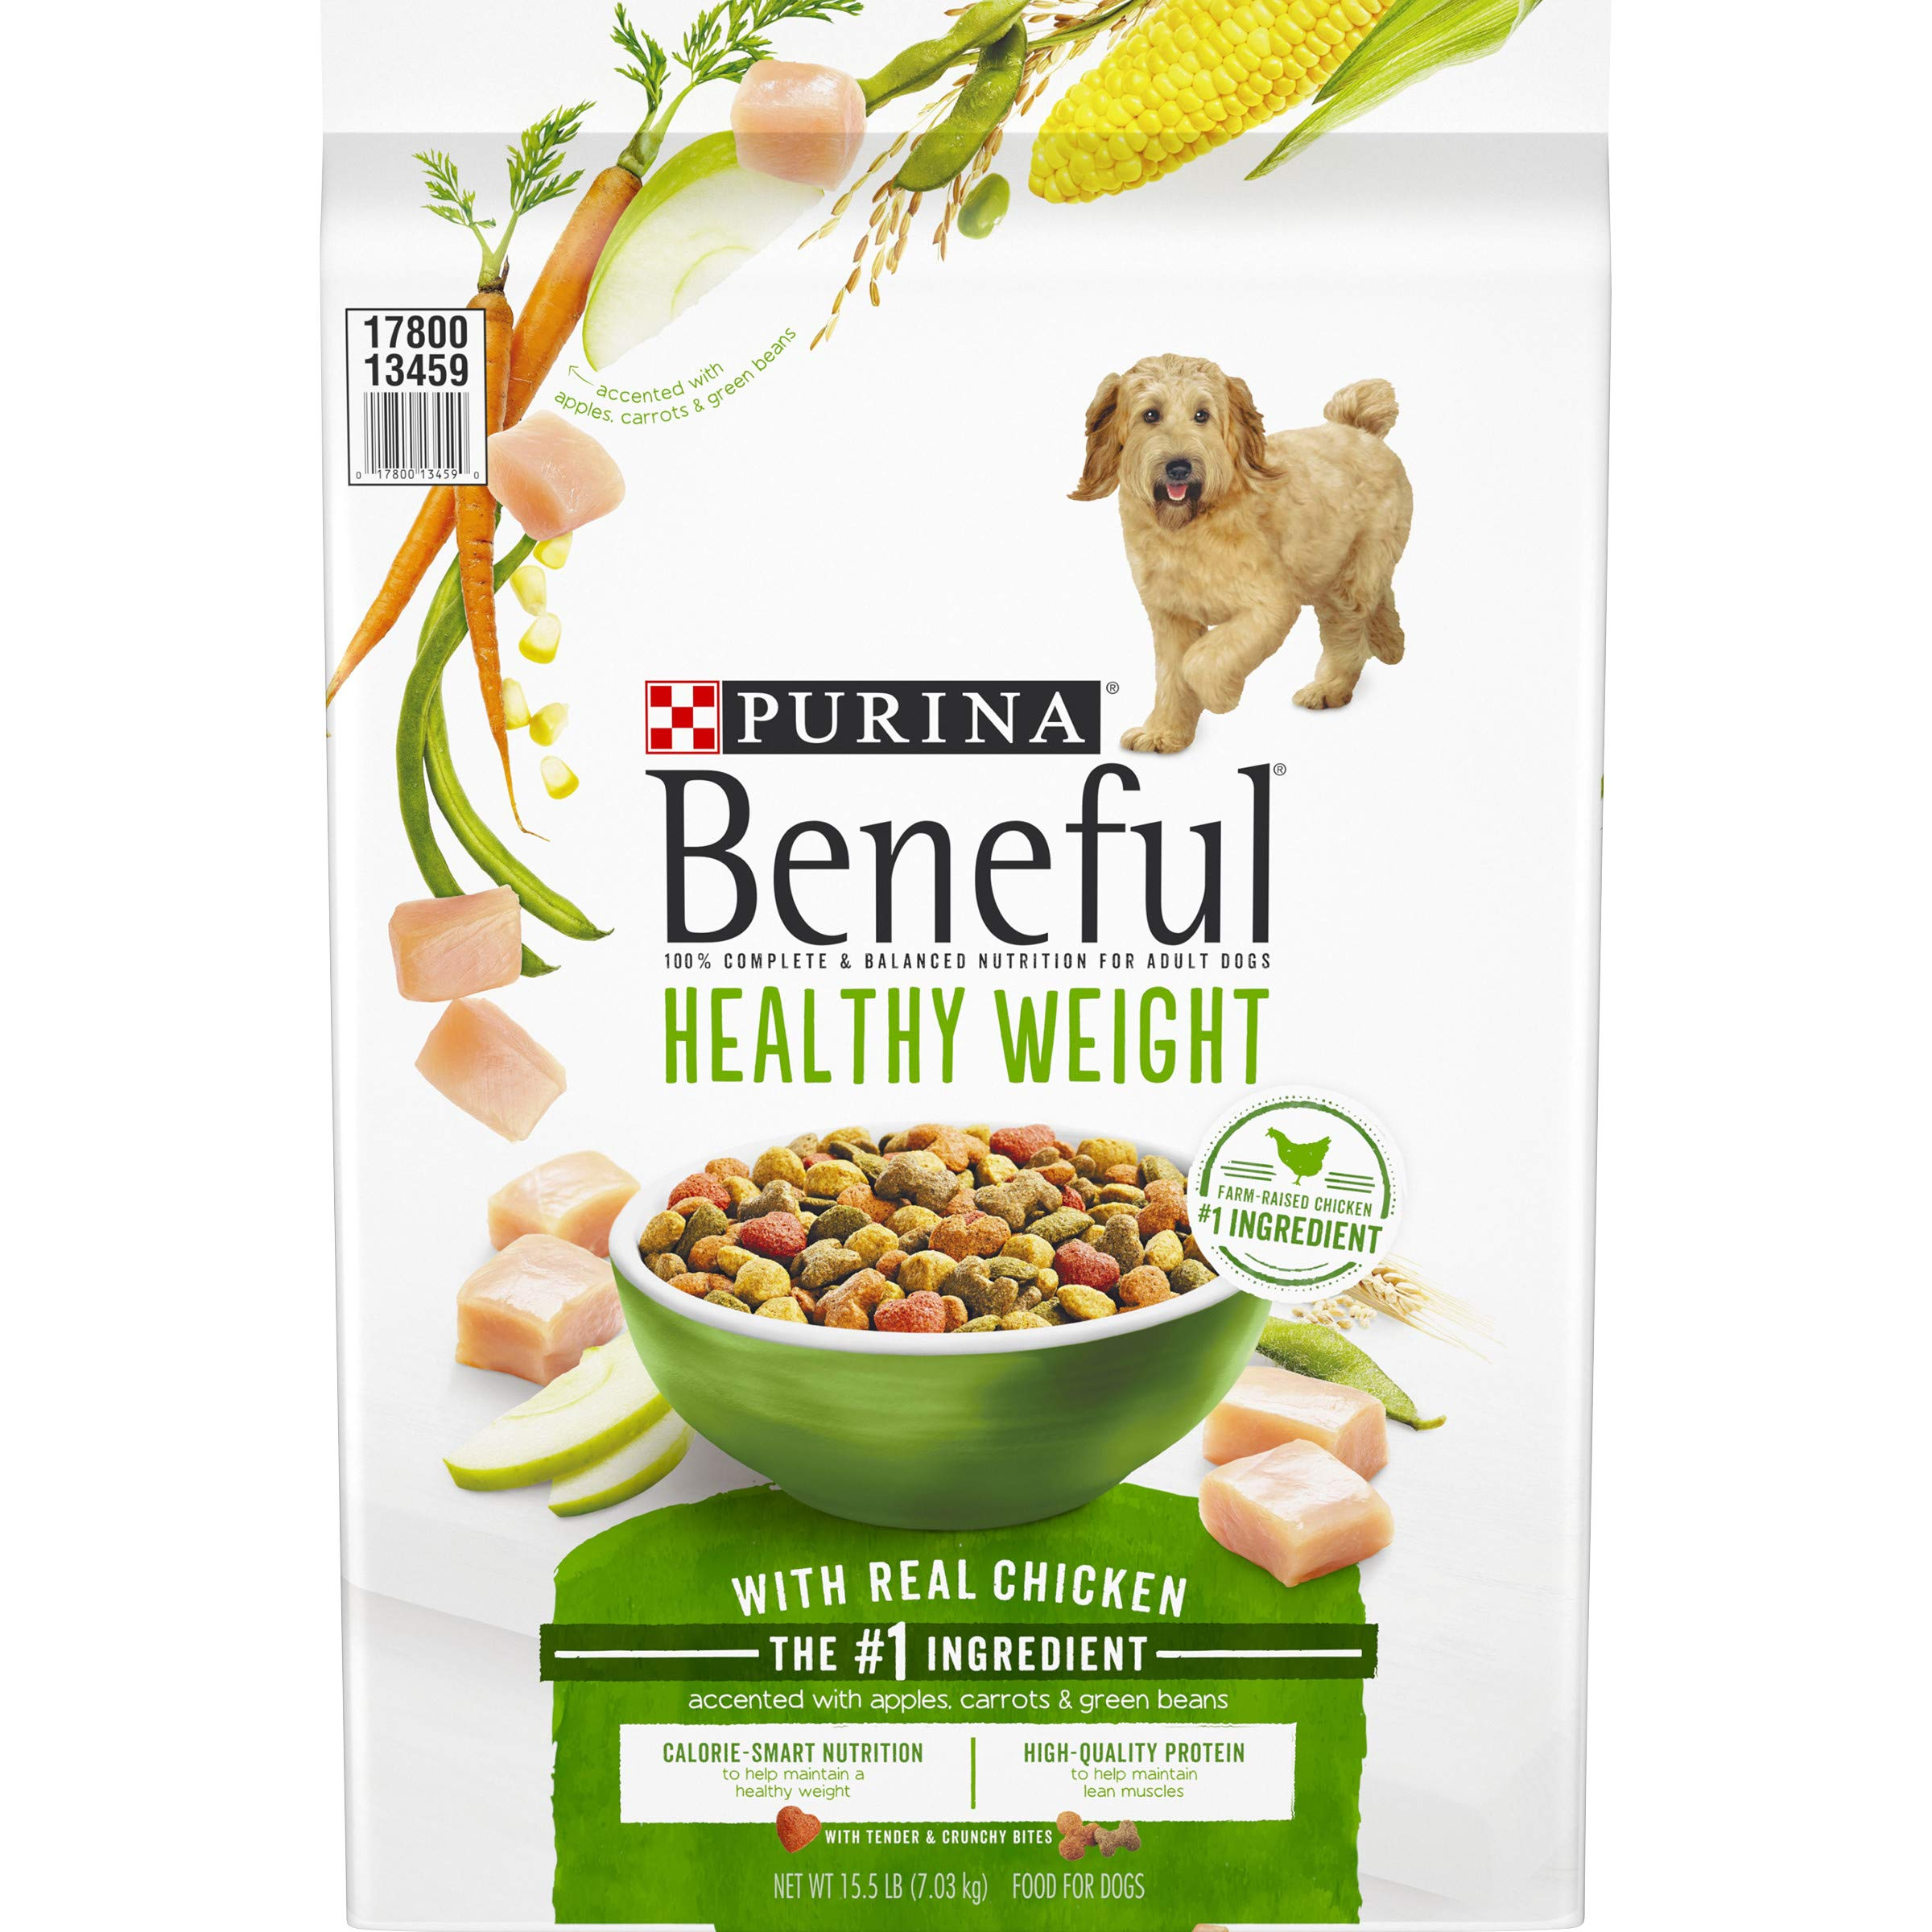 Purina Beneful Healthy Weight Dry Dog Food, Healthy Weight With Real Chicken - 15.5 lb. Bag by Purina Beneful